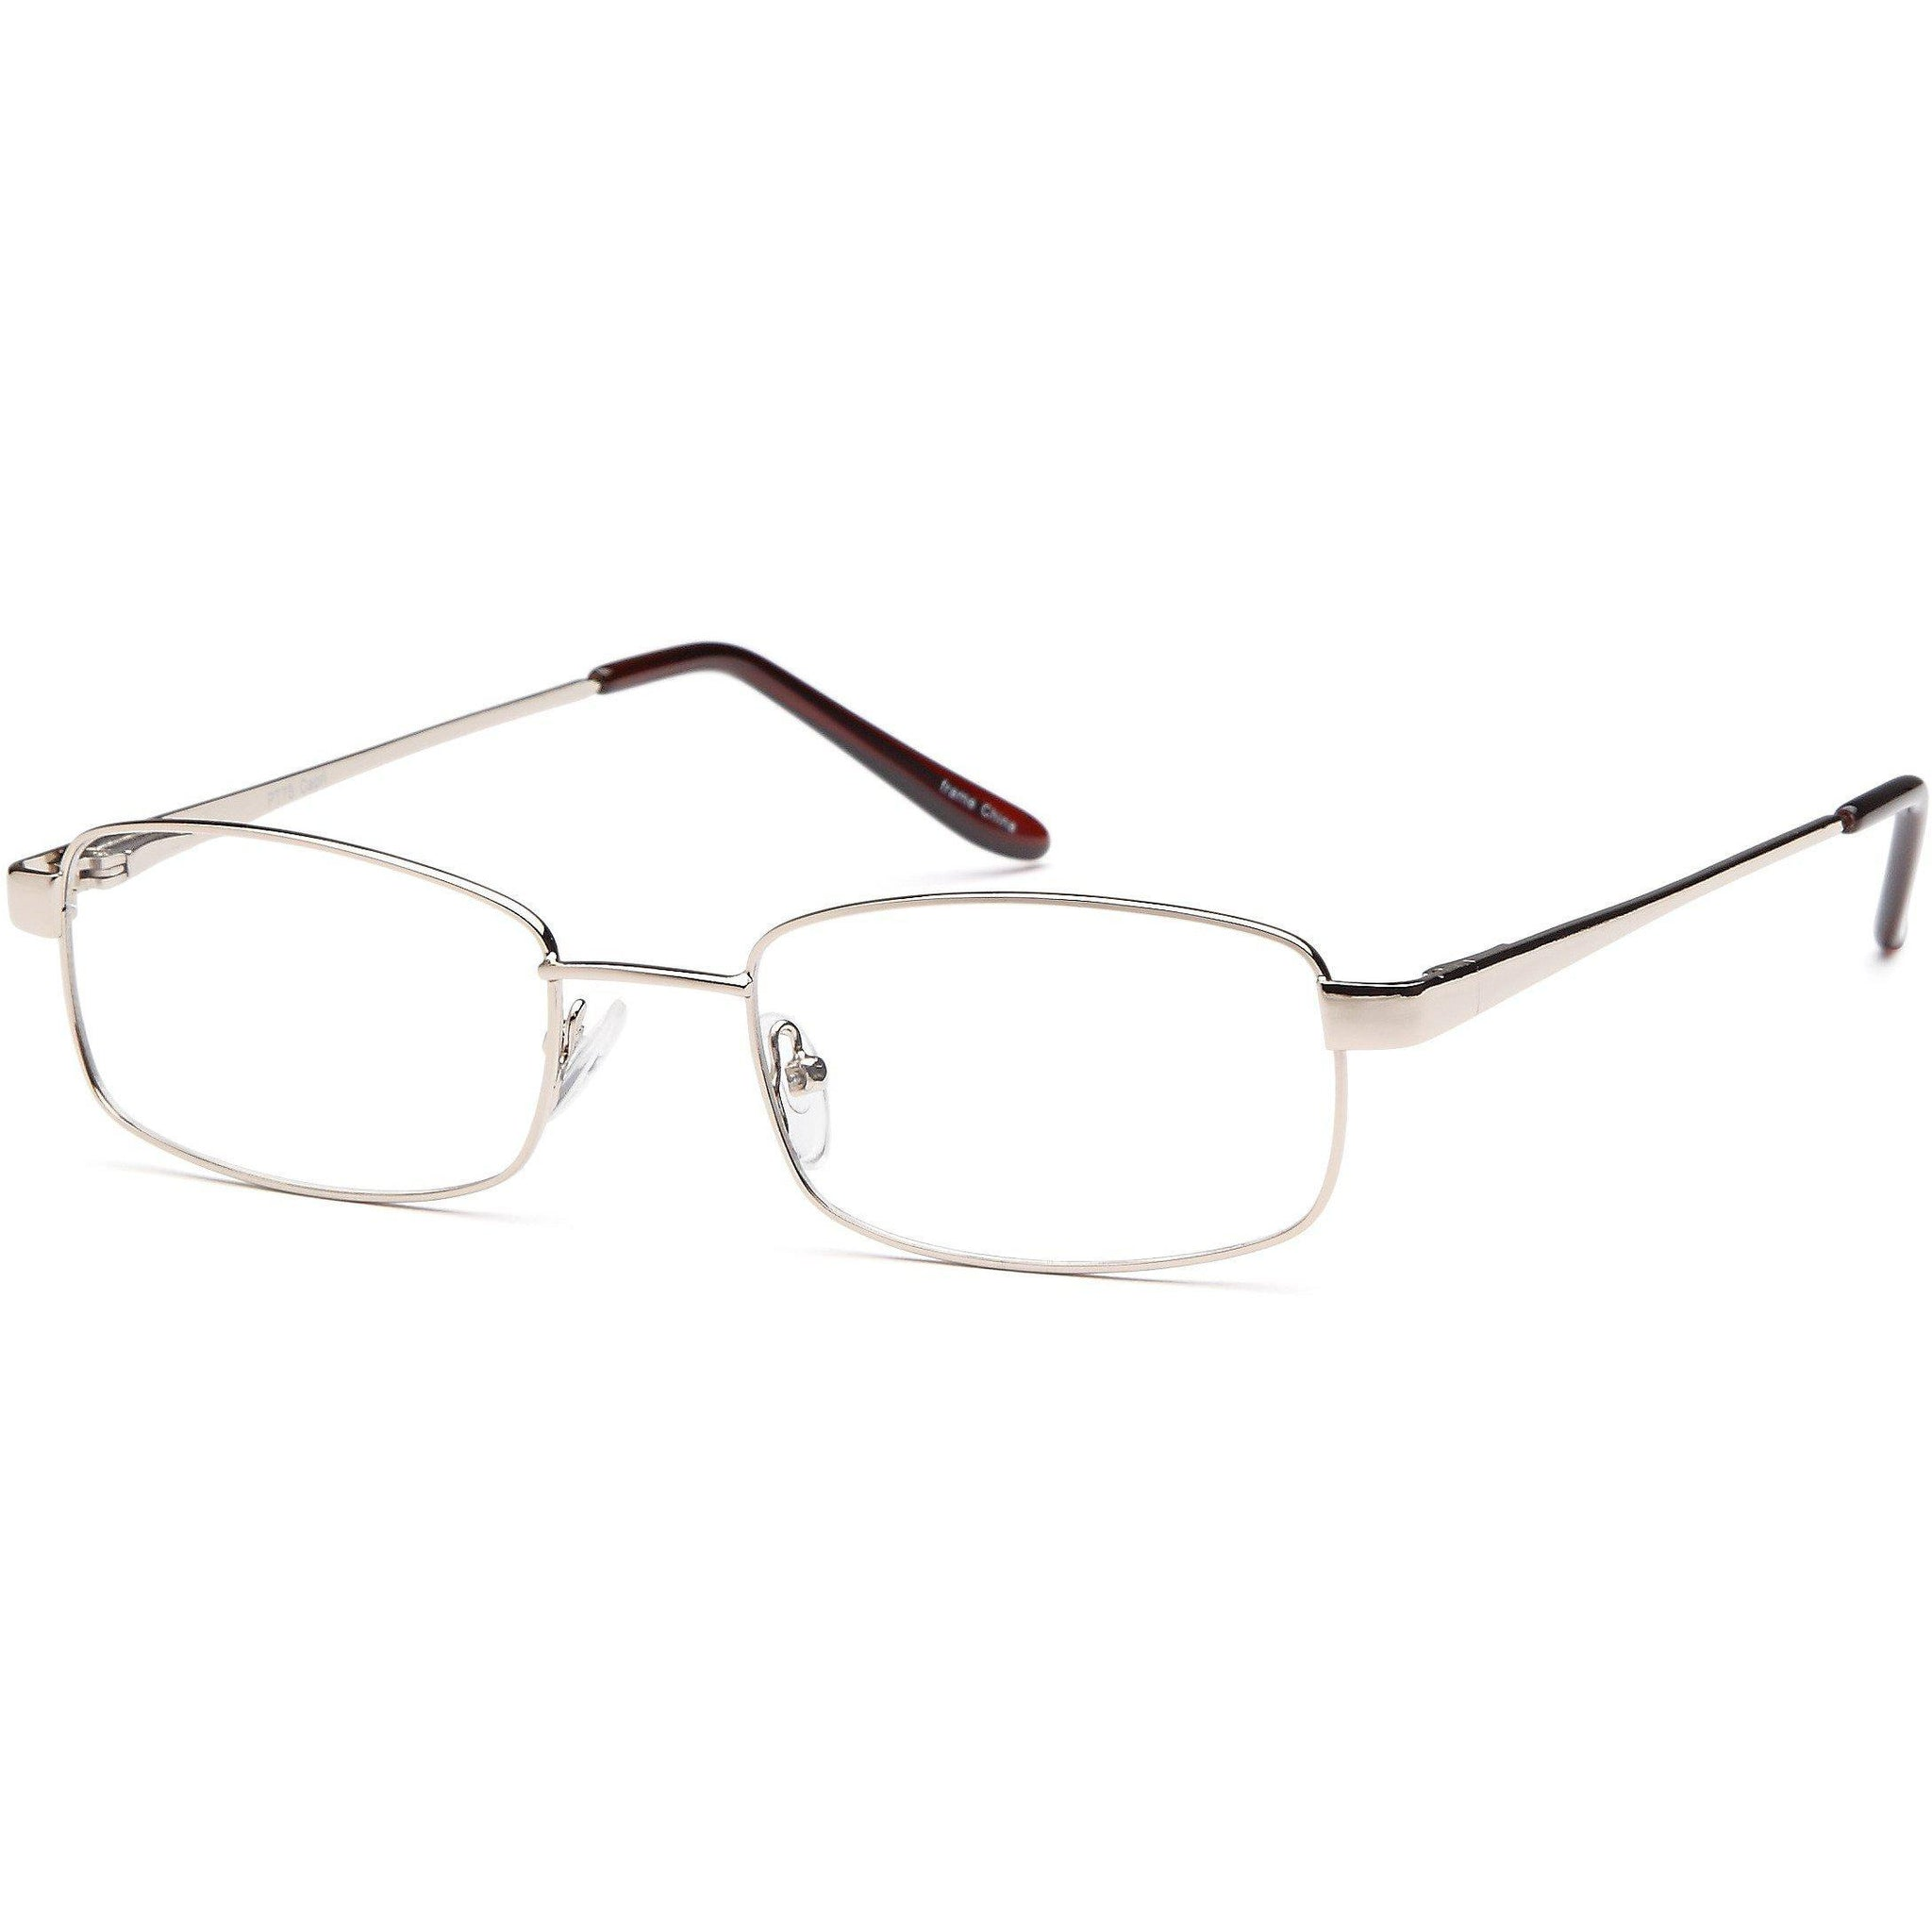 Appletree Prescription Glasses PT 78 Eyeglasses Frame